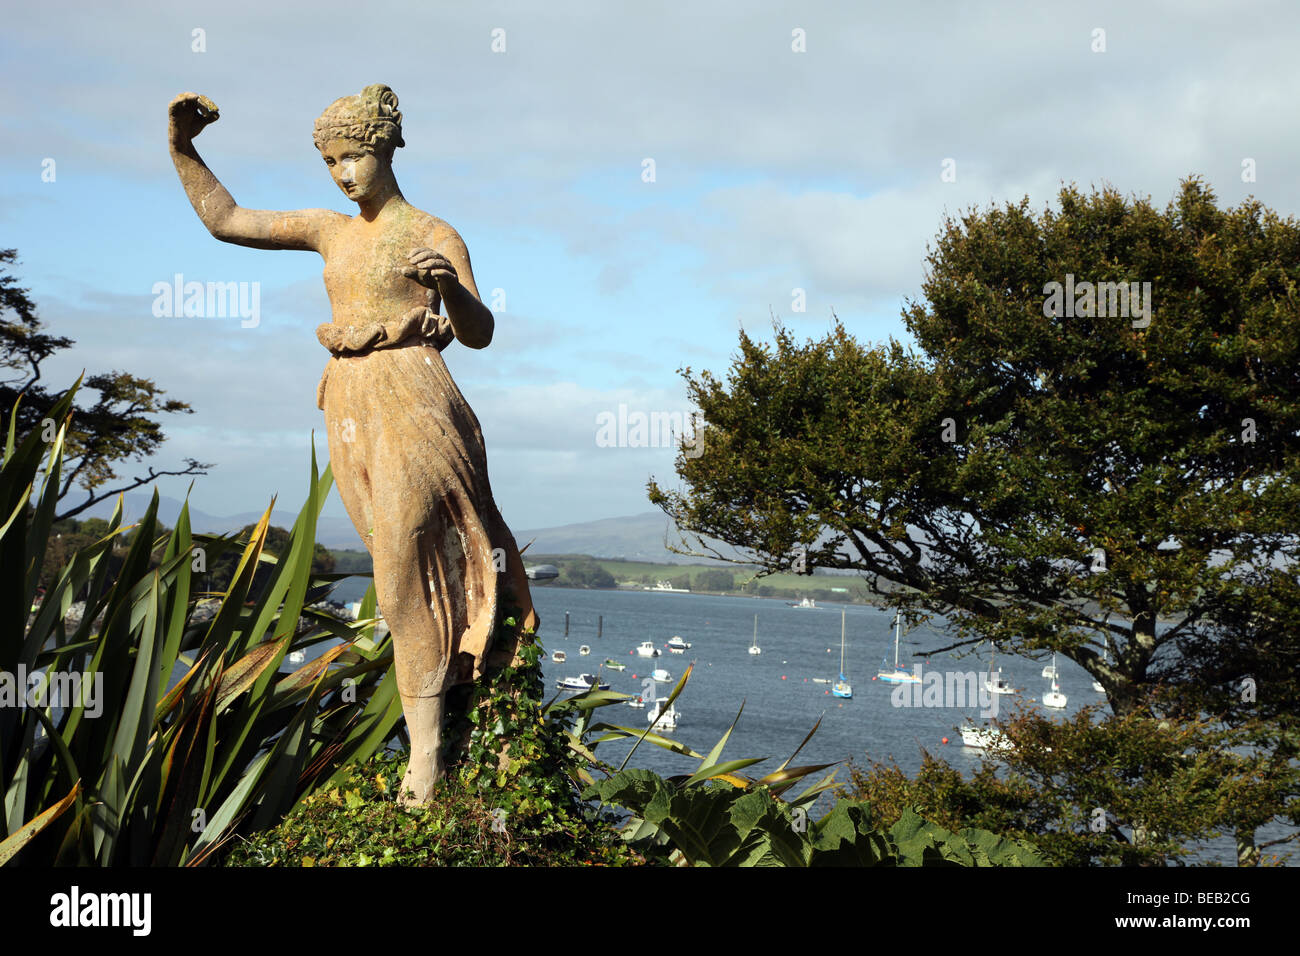 statuary in gardens of Bantry House, Bantry Bay, West Cork, Ireland - Stock Image